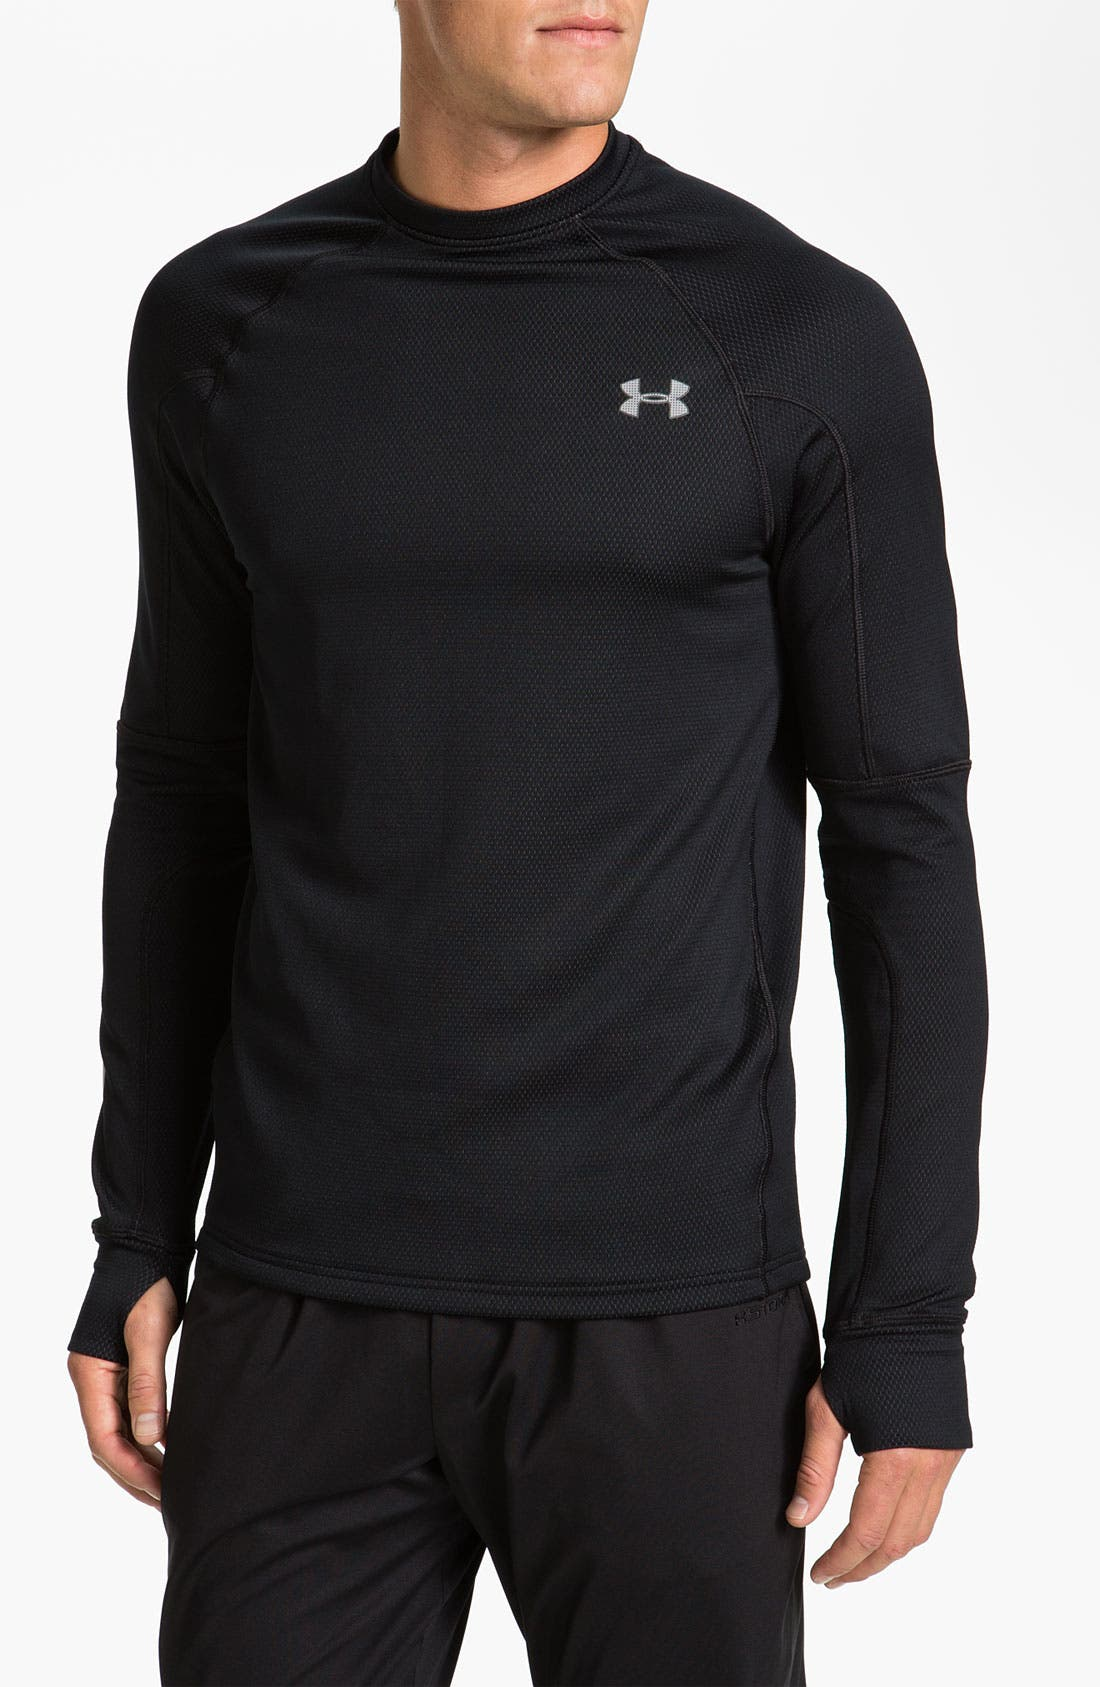 Alternate Image 1 Selected - Under Armour 'Thermo Run' Fitted Long Sleeve ColdGear® T-Shirt (Online Exclusive)